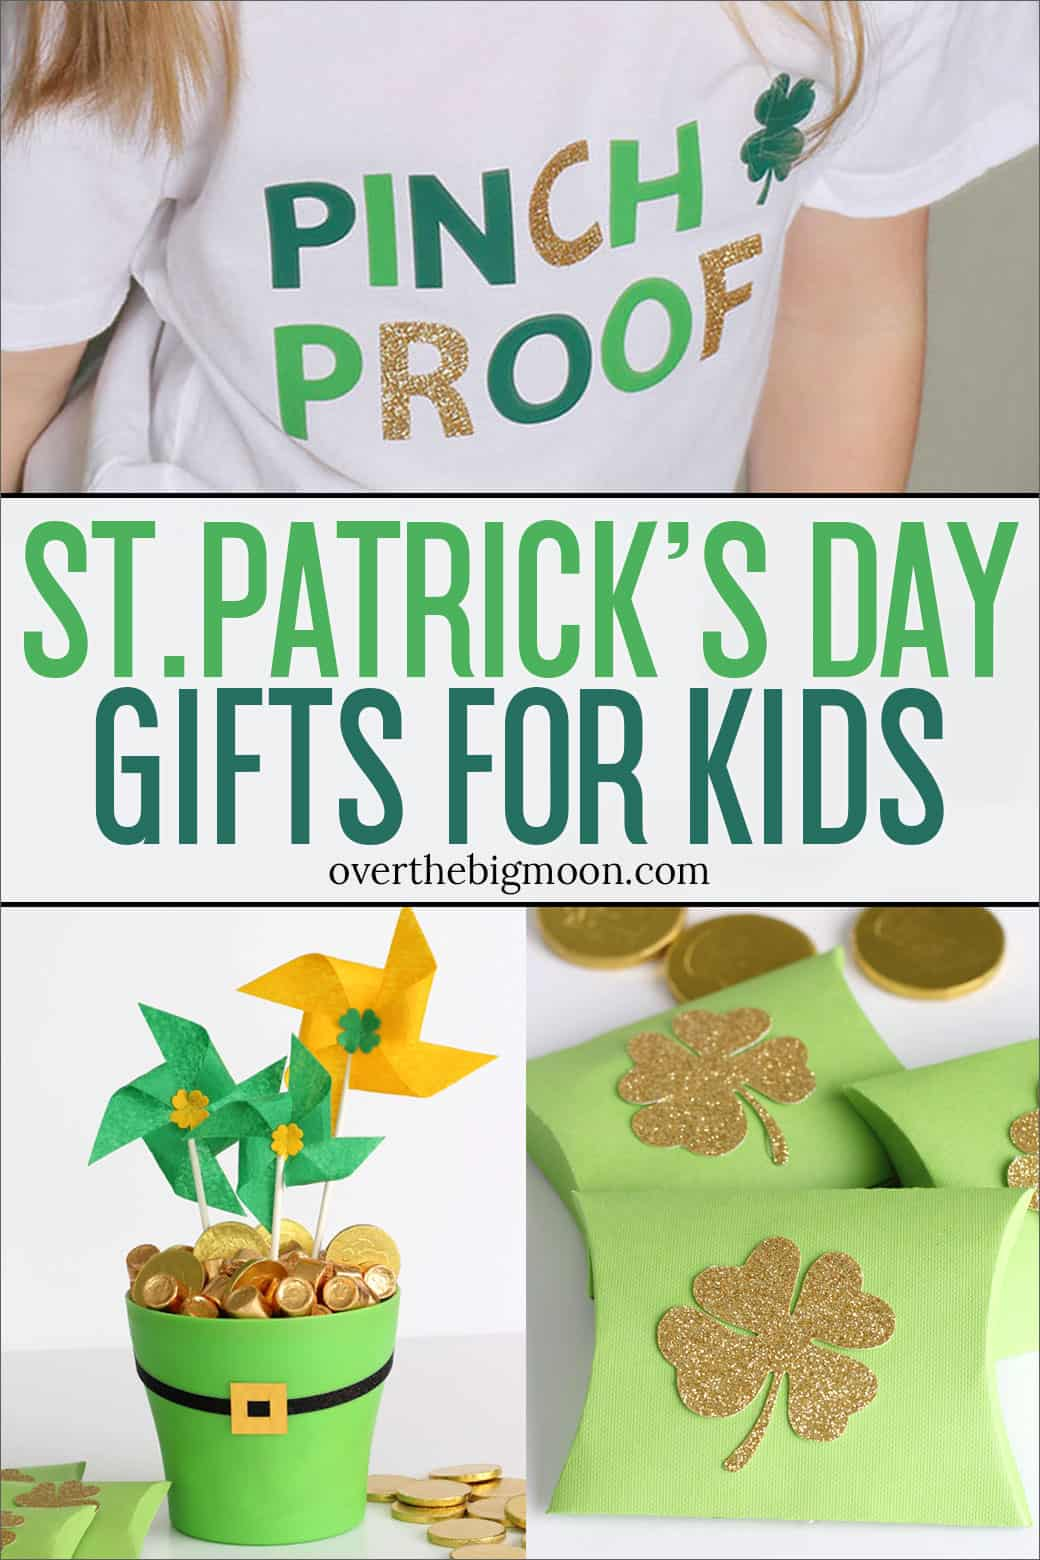 St.Patrick's Day is a super easy holiday to make extra fun! I've got 3 simple gift ideas for your kids! From overthebigmoon.com!